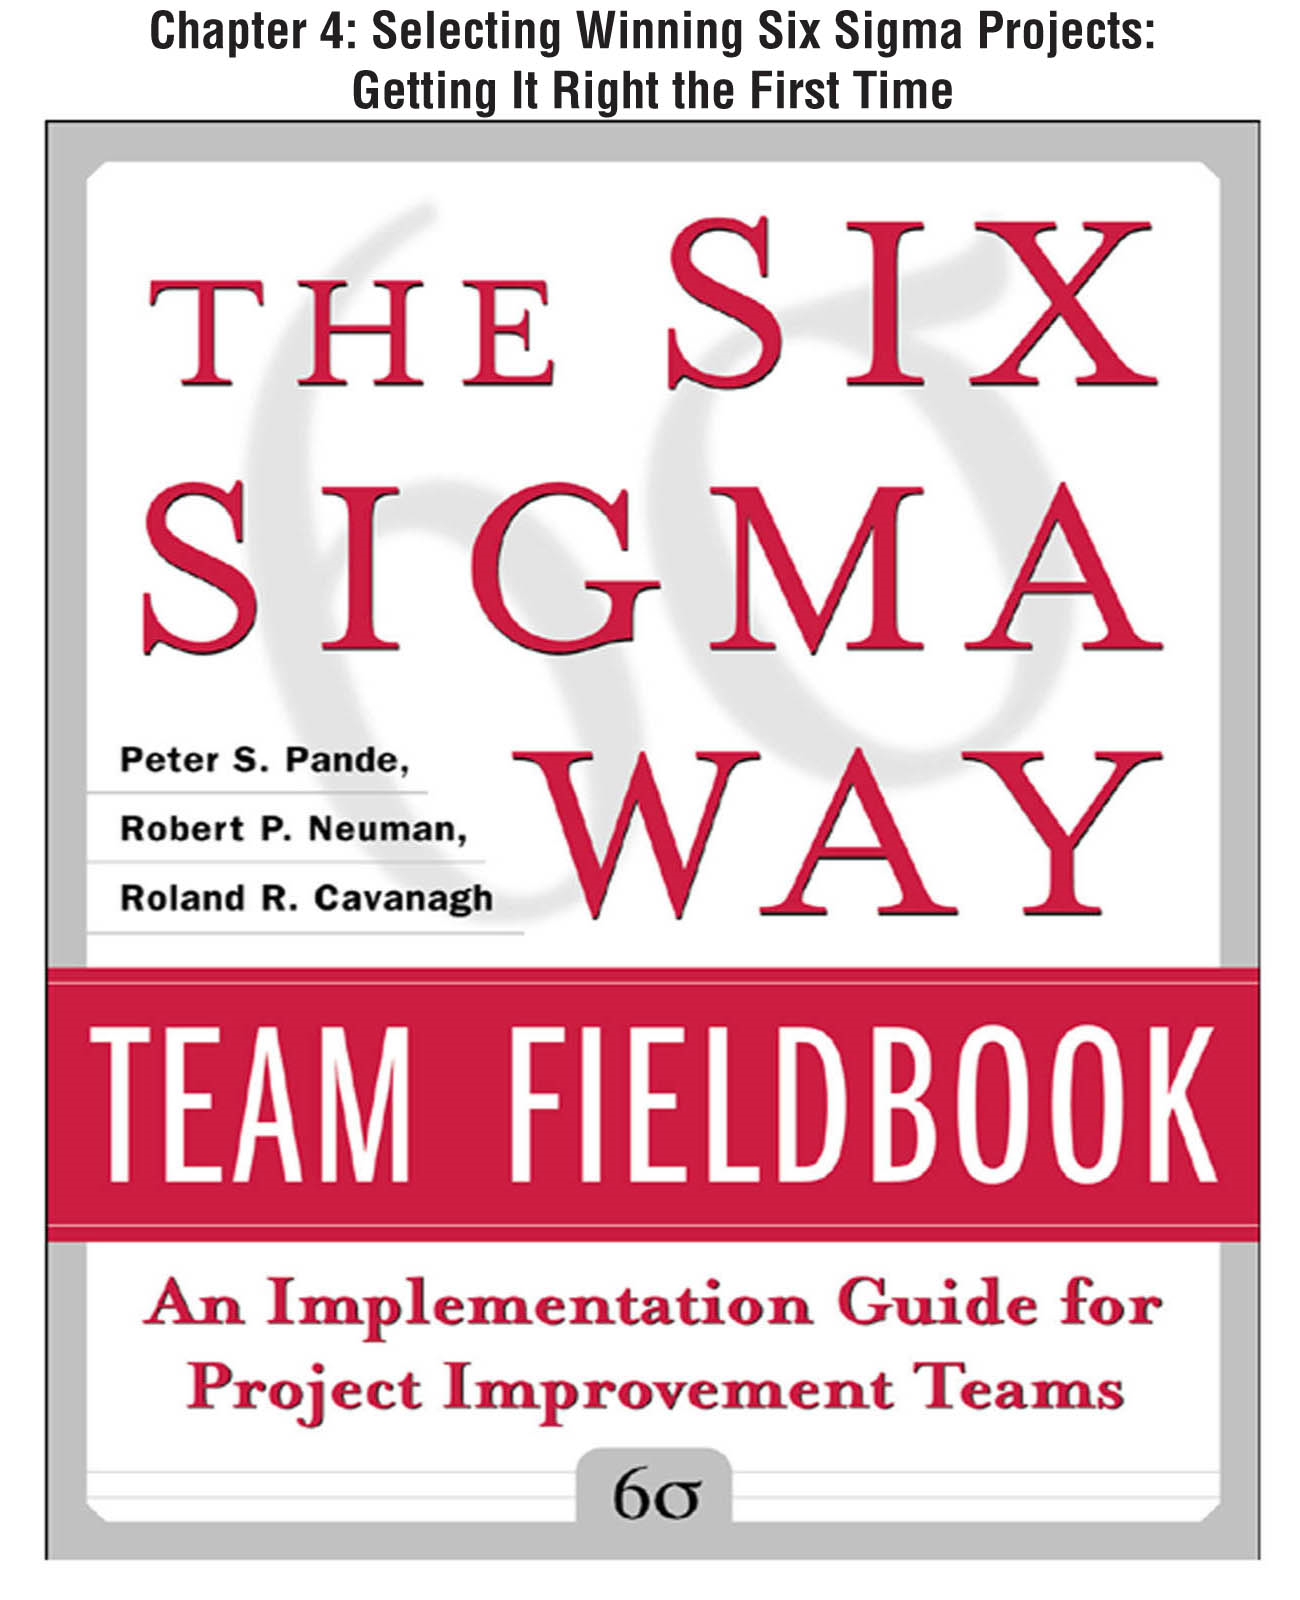 The Six Sigma Way Team Fieldbook, Chapter 4 - Selecting Winning Six Sigma Projects Getting It Right the First Time